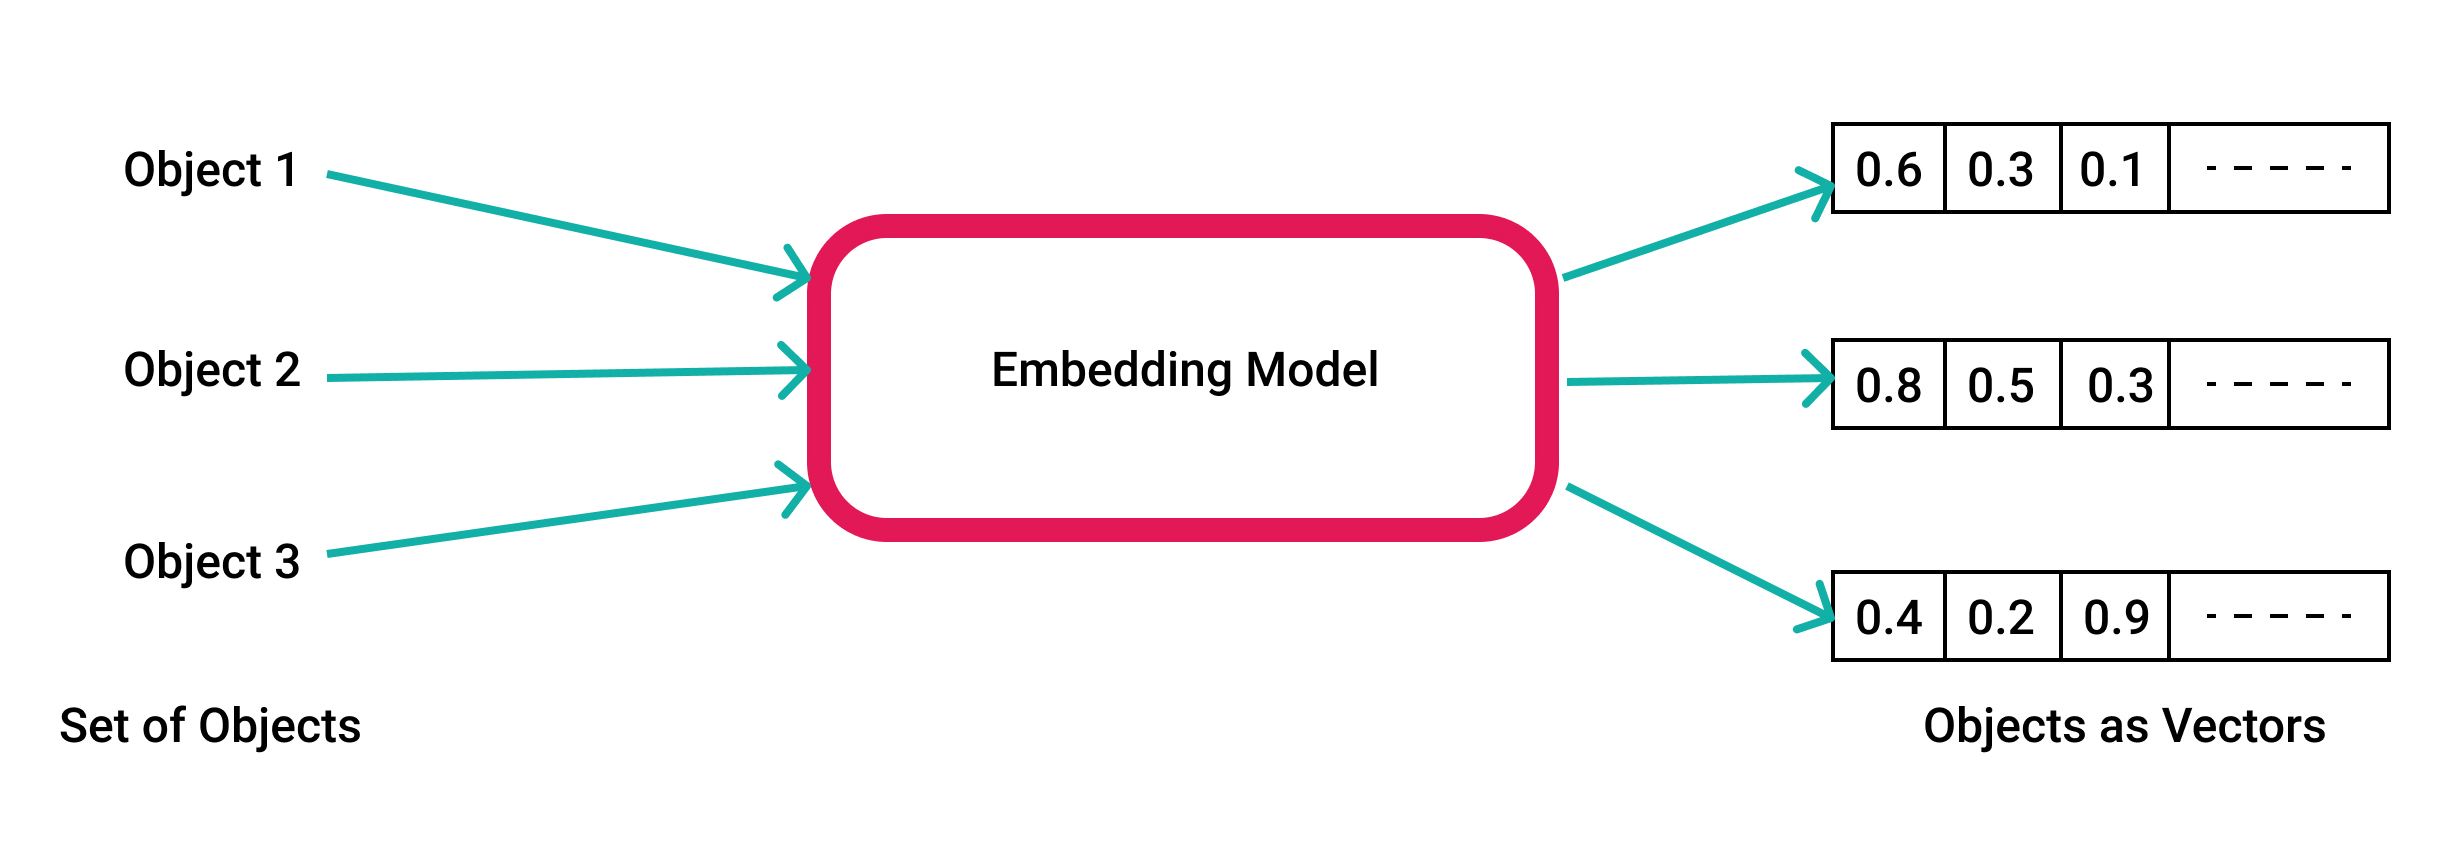 Vector Embeddings are a list of numbers